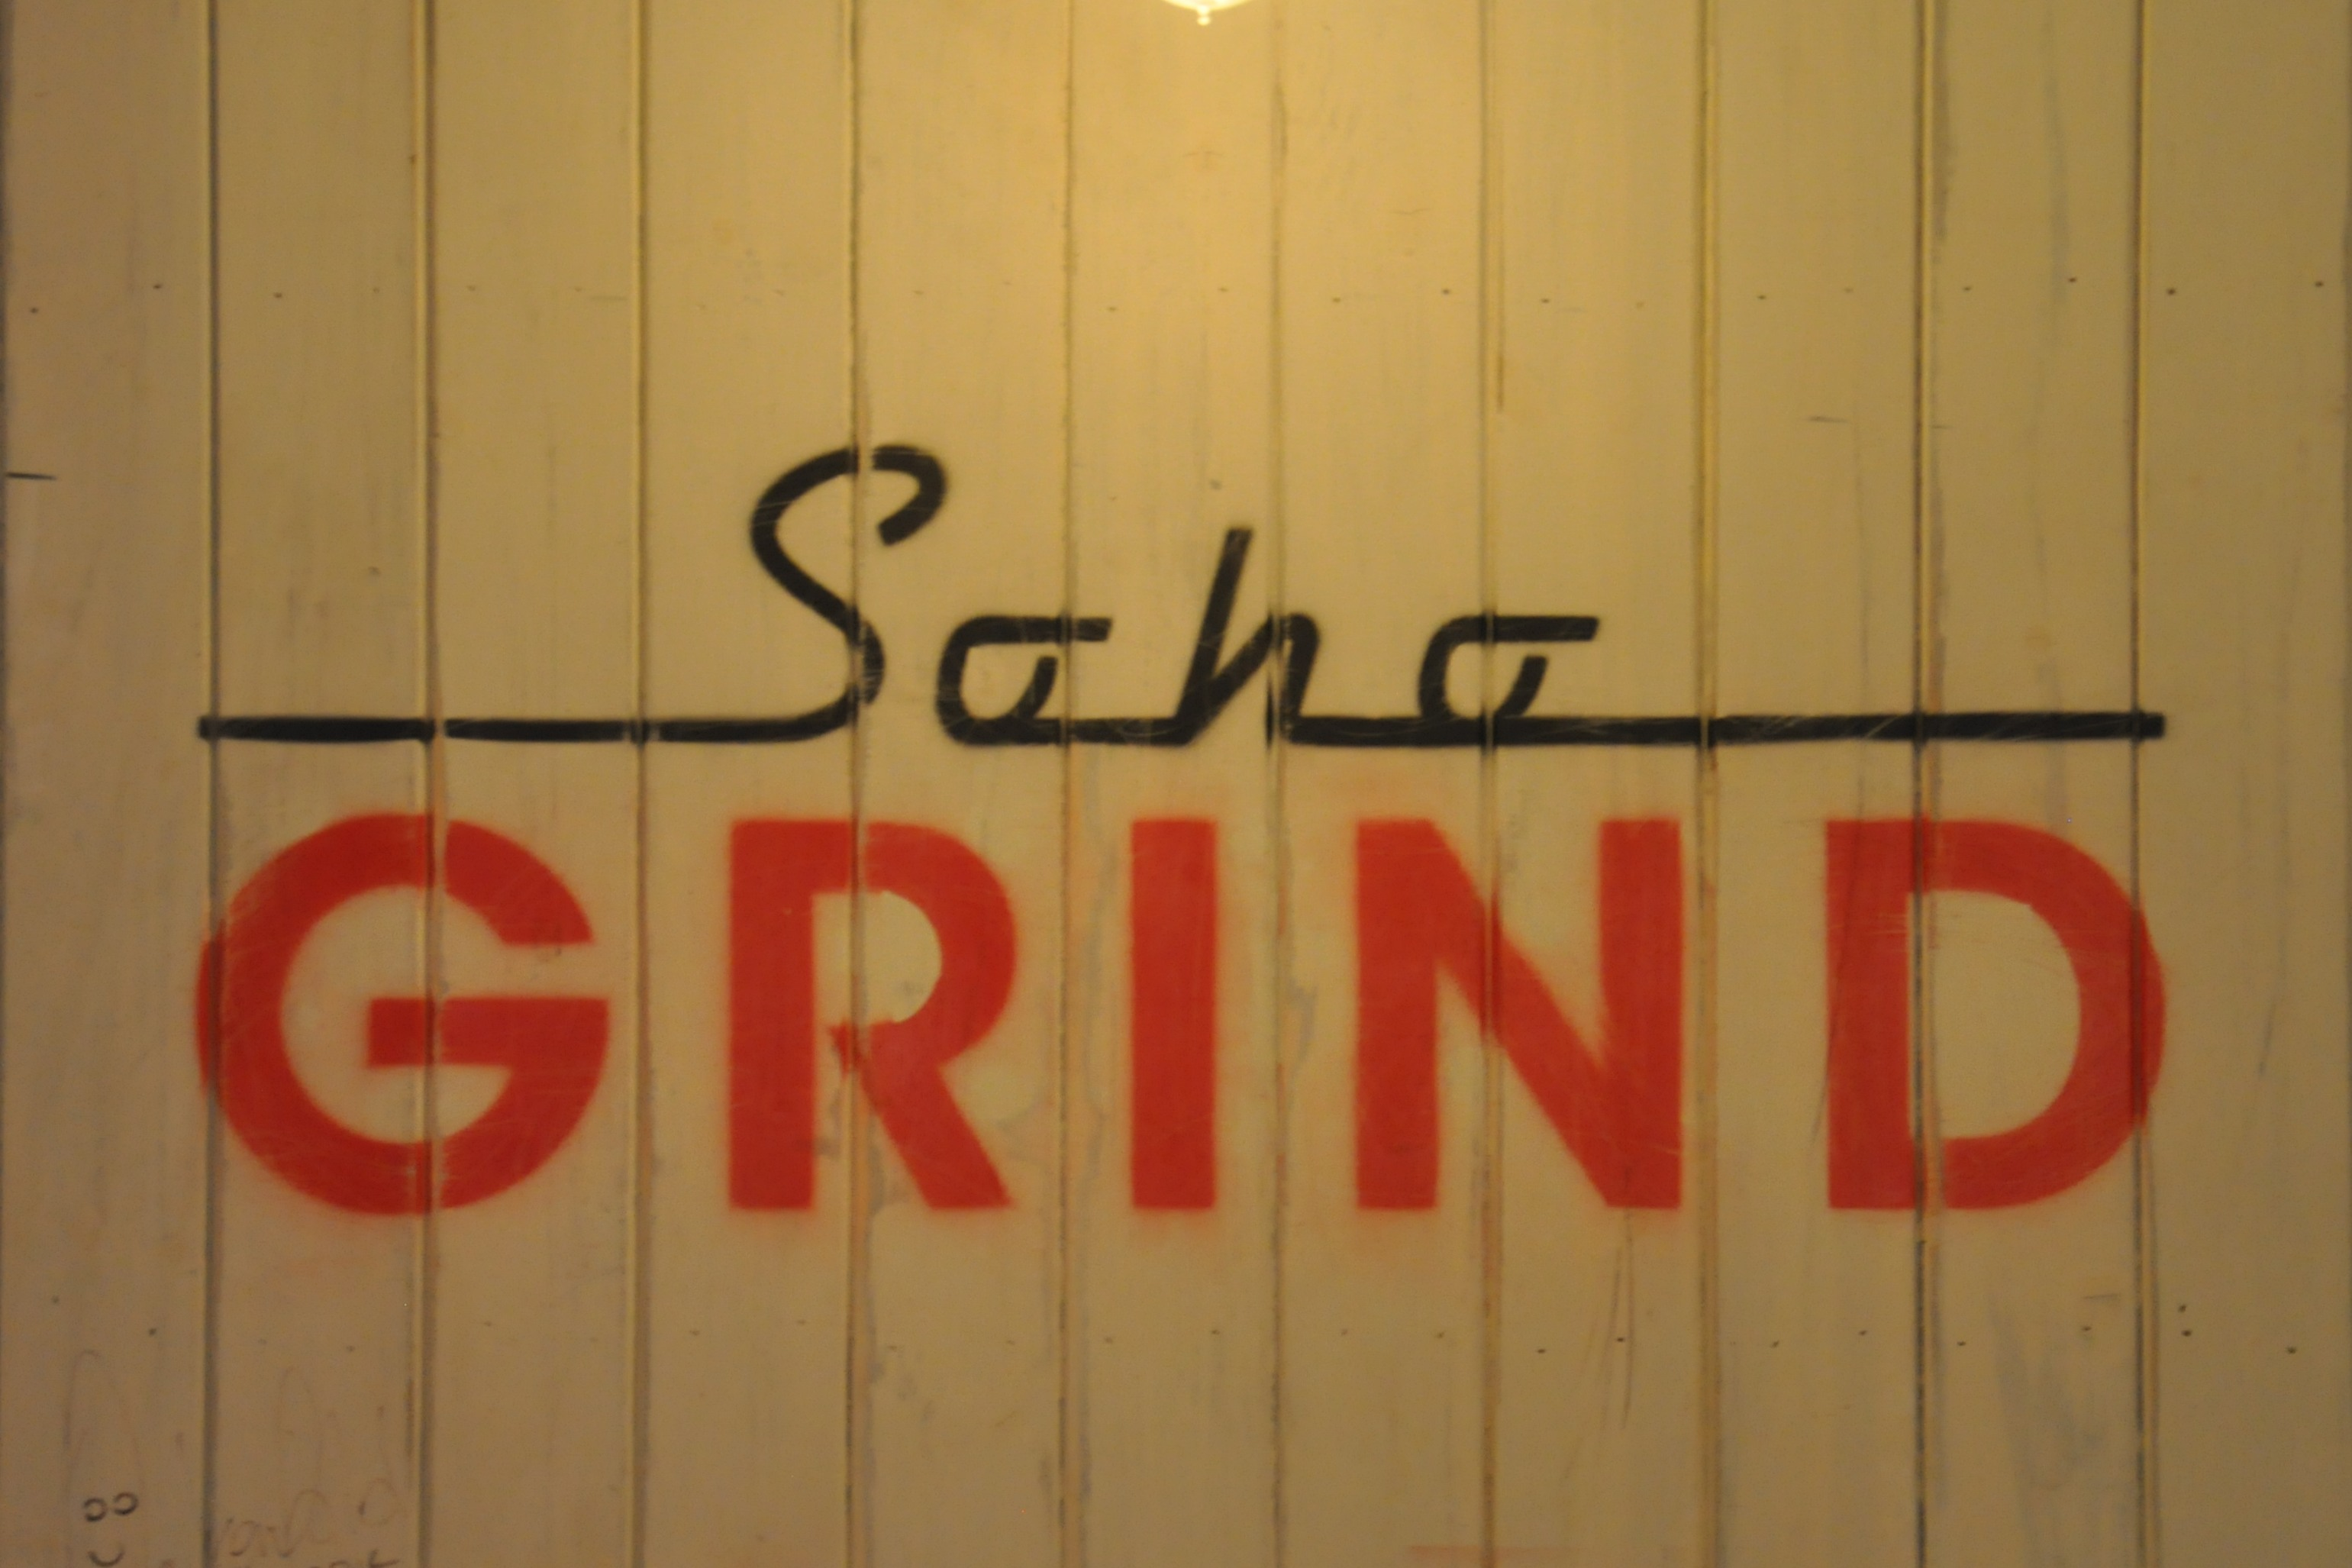 The Soho Grind logo from the back wall of Soho Grind: the word Soho written in black script over GRIND in red capitals.